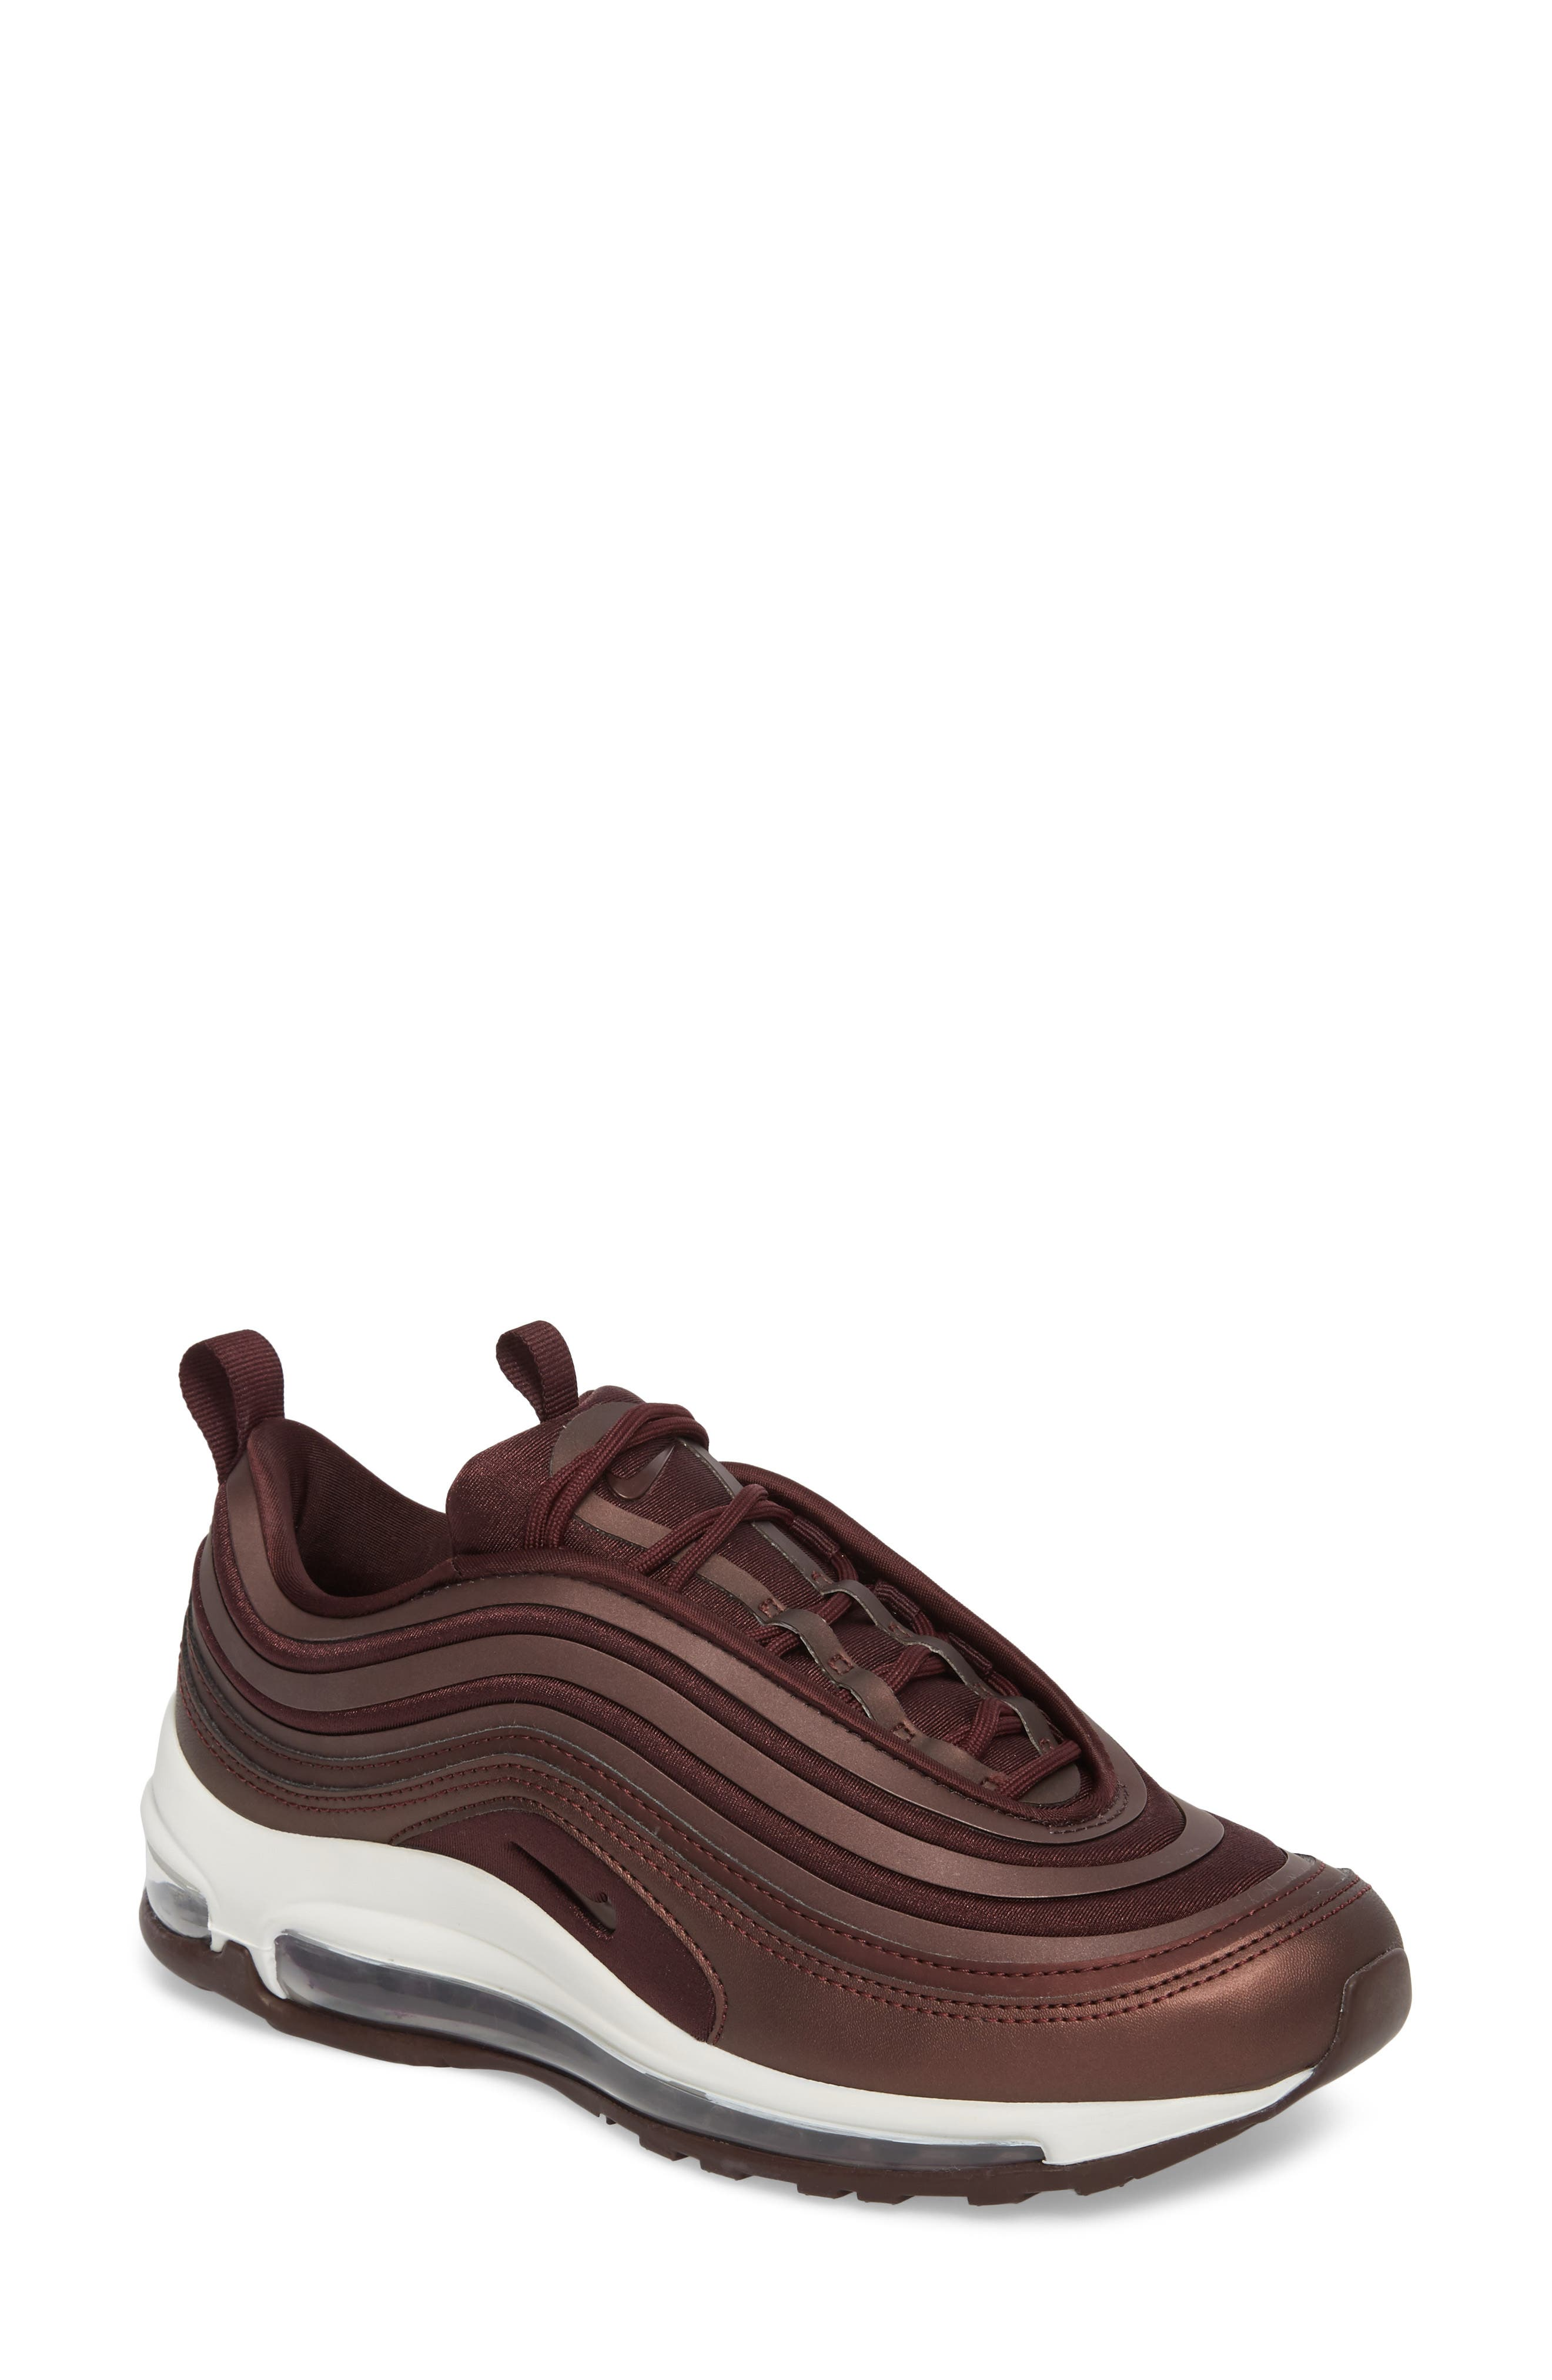 Nike Air Max 97 Ultralight 2017 Sneaker (Women)